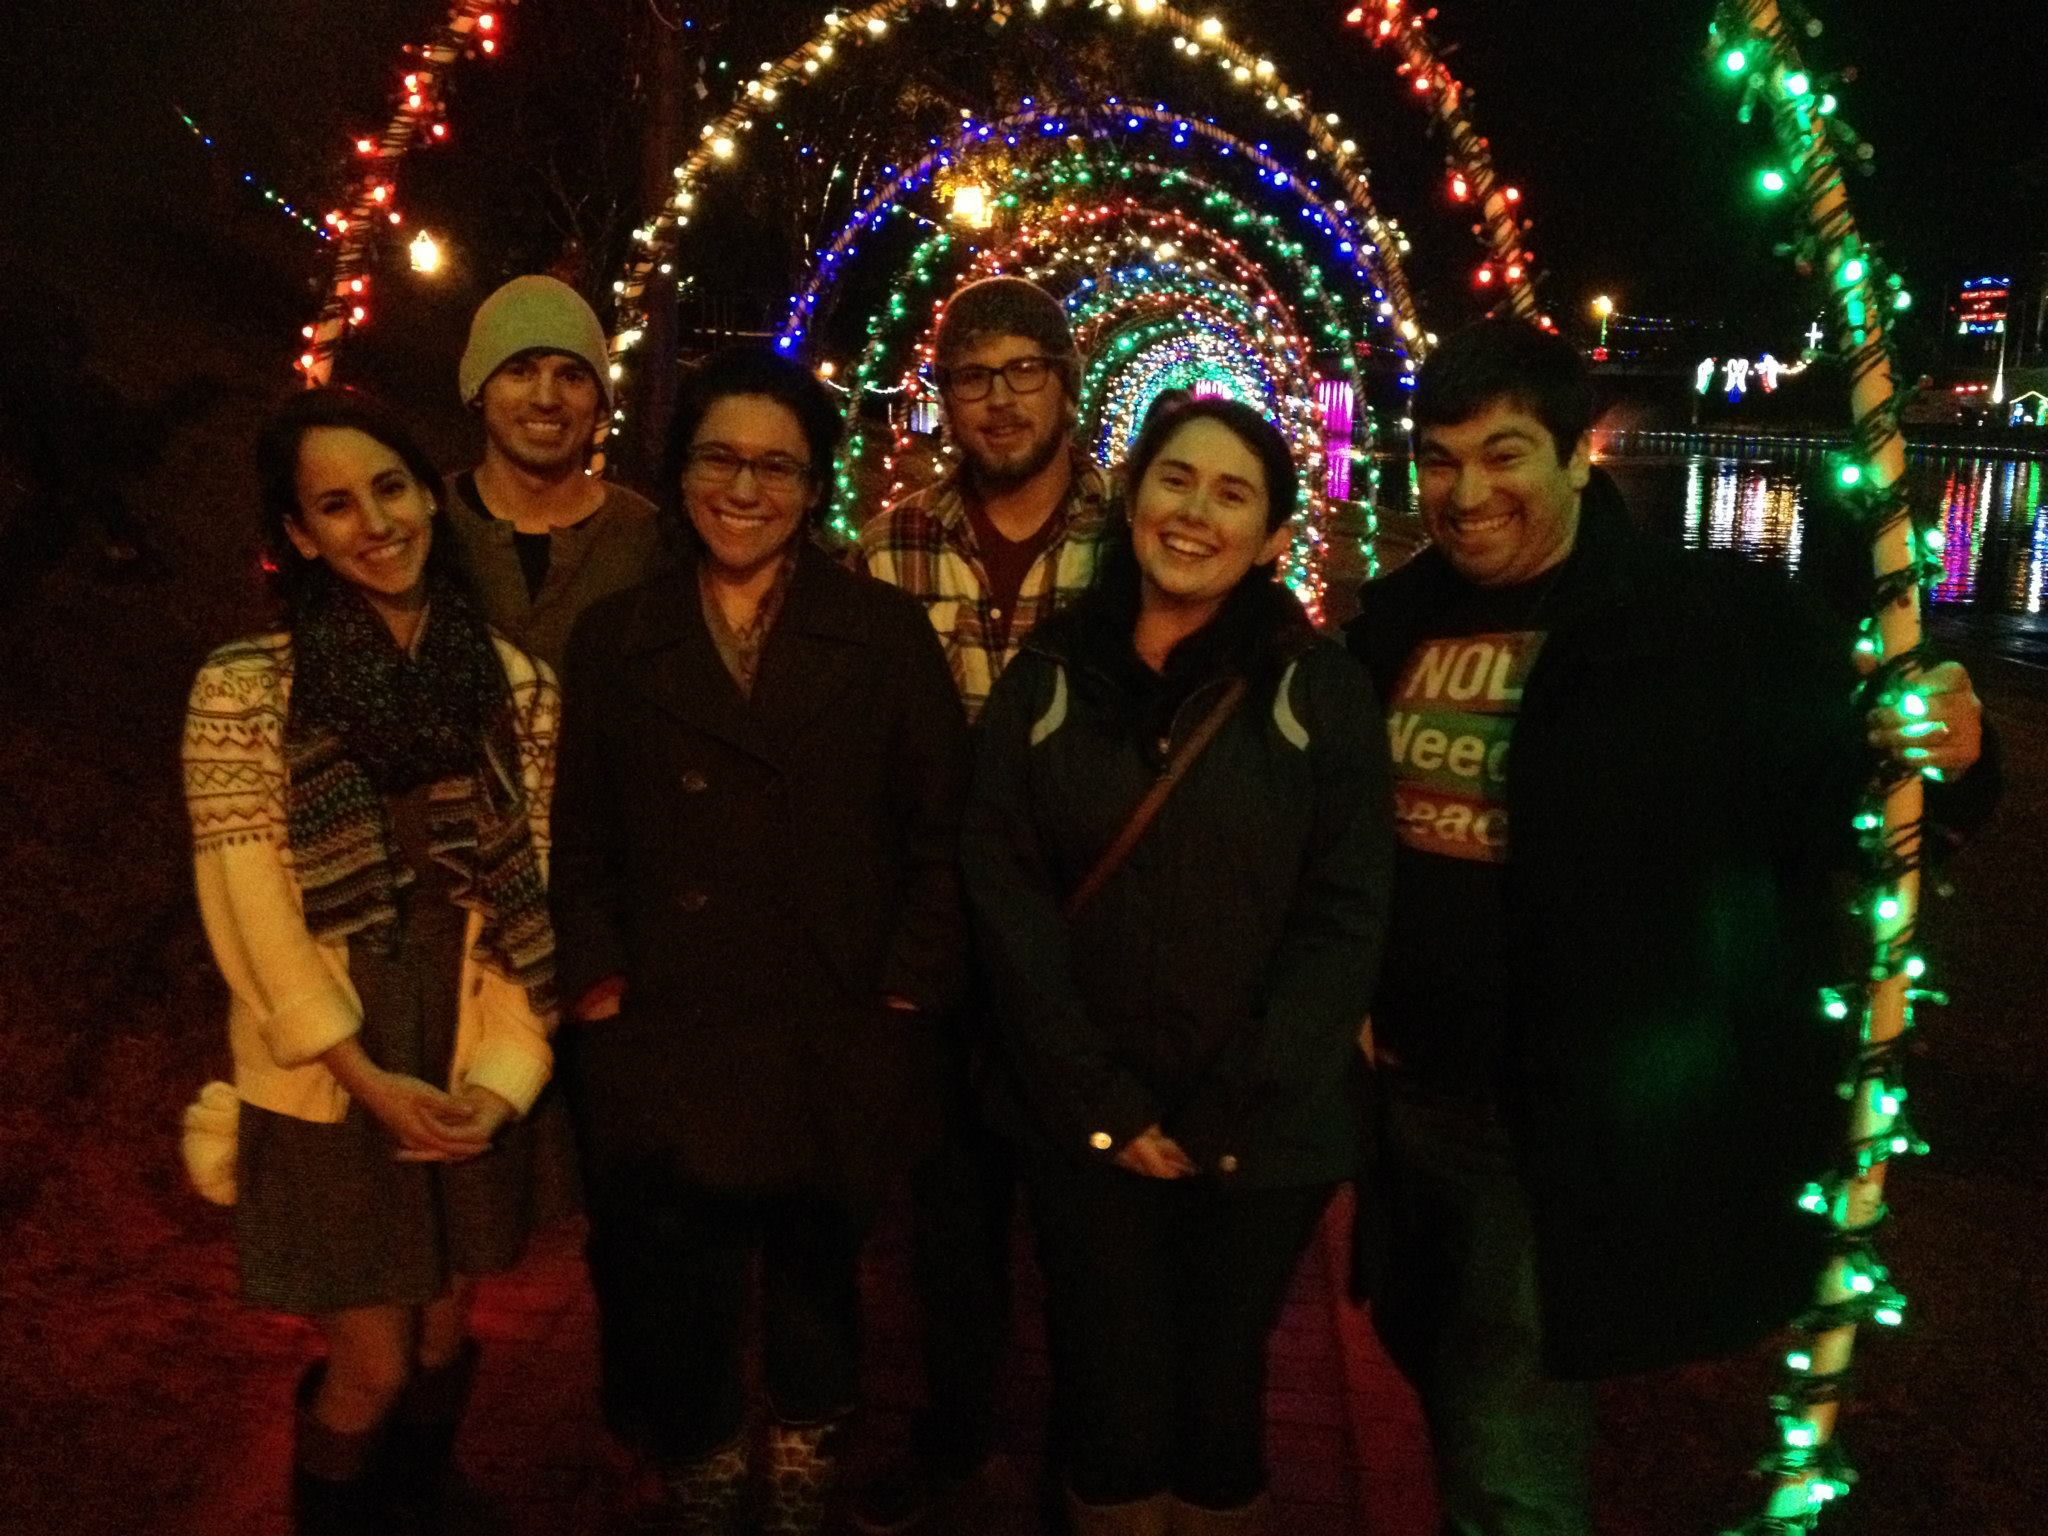 This is our group at the Christmas festival.  I am in the front on the left, and Dalton is in the back on the right.  Notice how he and I are not standing next to each other.